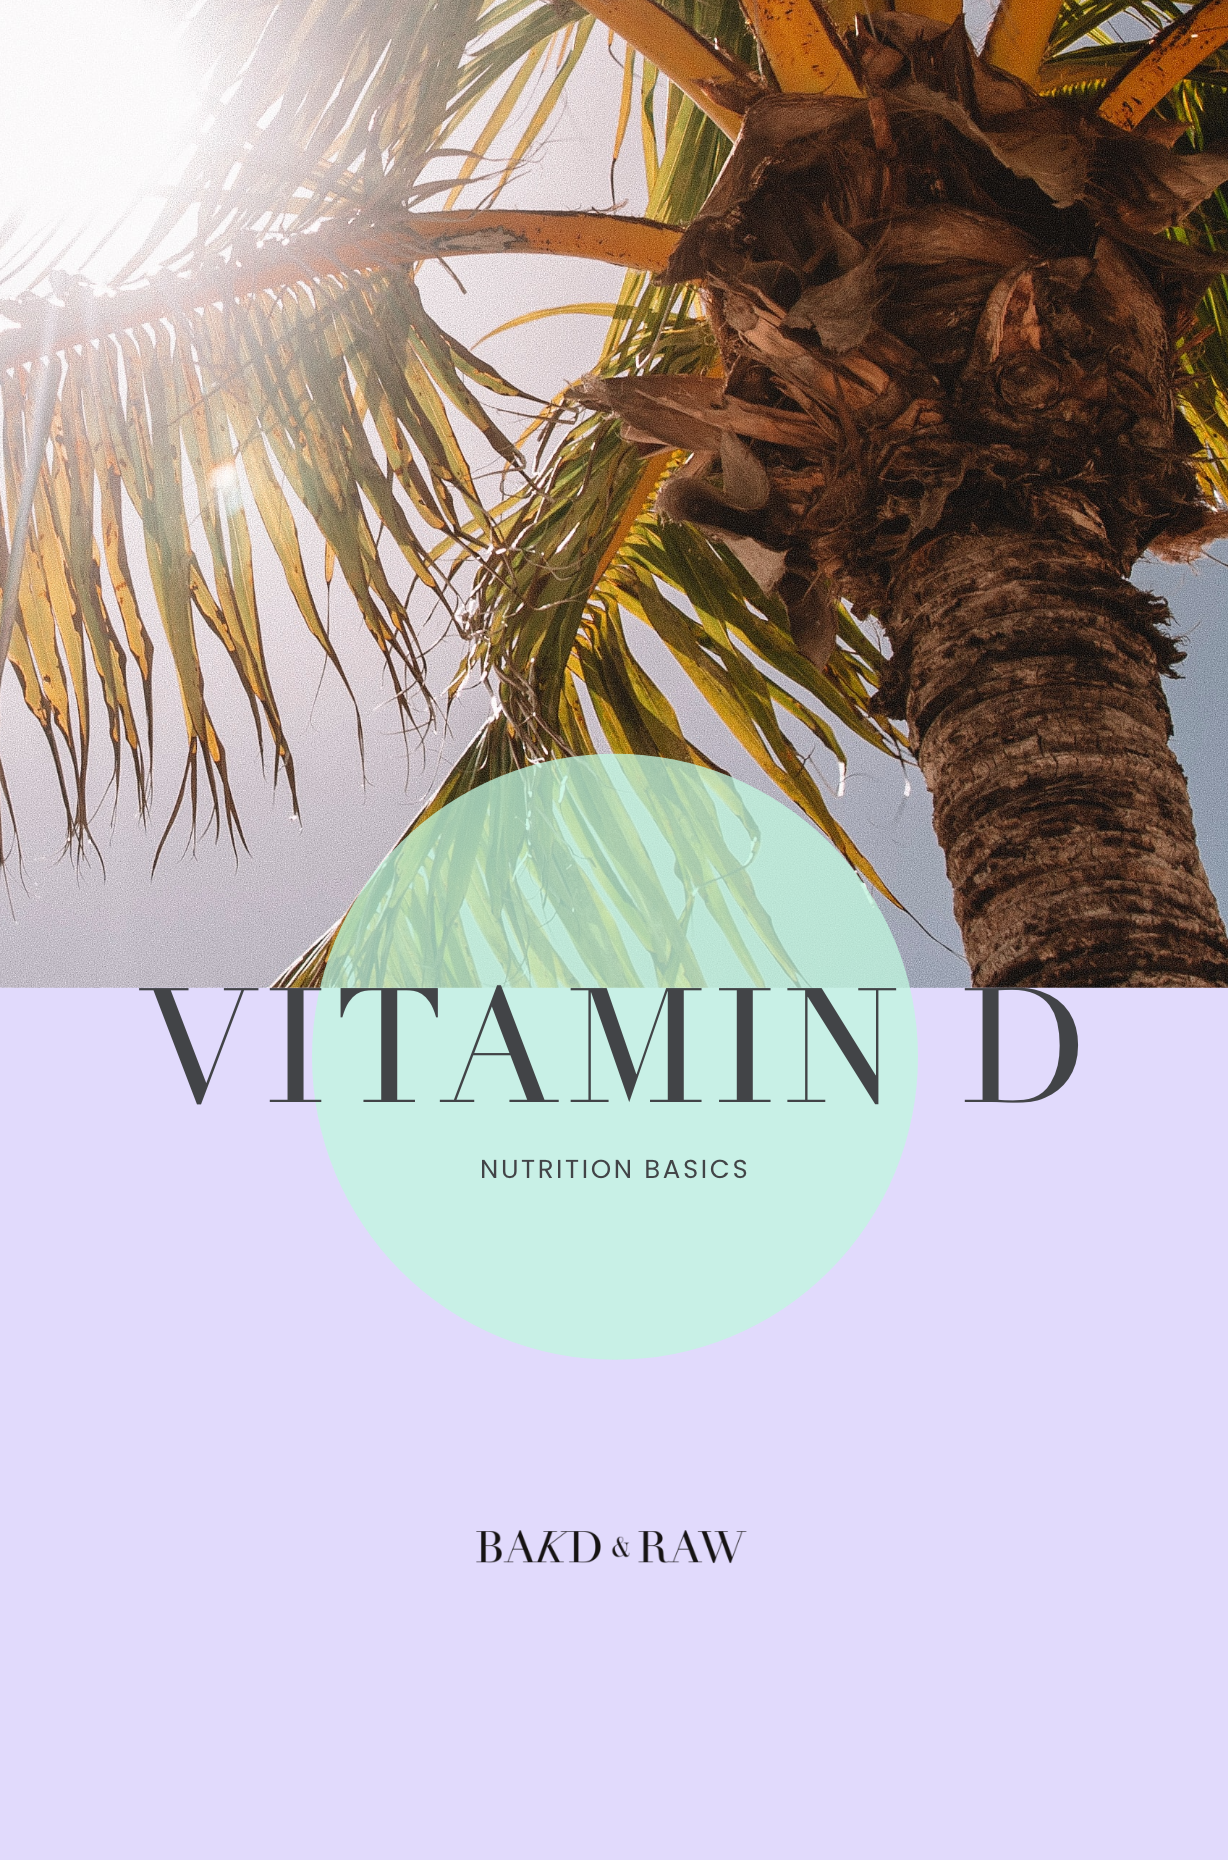 Should We Take Vitamin D Supplements?